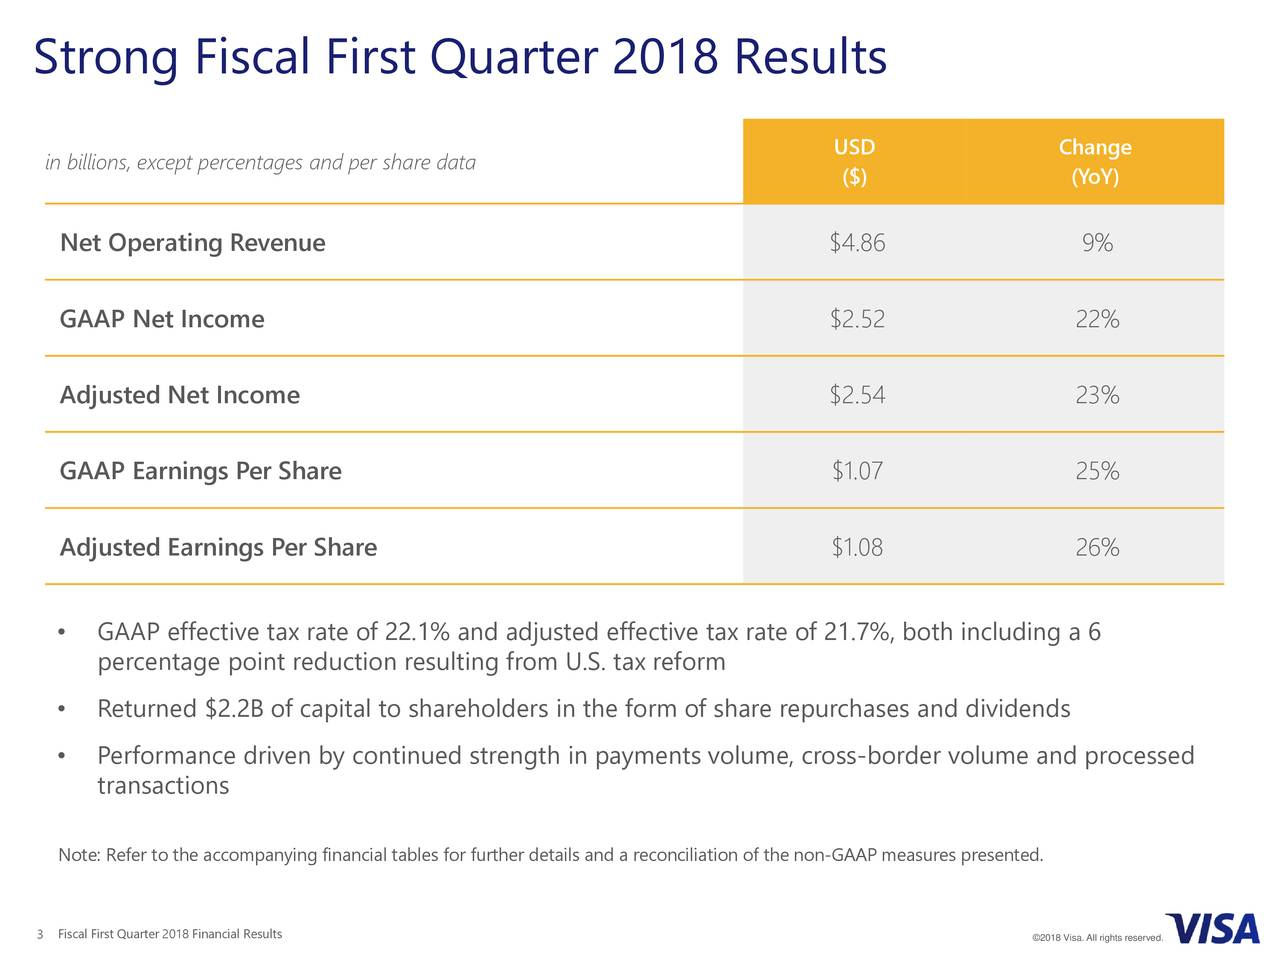 in billions, except percentages and per share data USD Change ($) (YoY) Net Operating Revenue $4.86 9% GAAP Net Income $2.52 22% Adjusted Net Income $2.54 23% GAAP Earnings Per Share $1.07 25% Adjusted Earnings Per Share $1.08 26% • GAAP effective tax rate of 22.1% and adjusted effective tax rate of 21.7%, both including a 6 percentage point reduction resulting from U.S. tax reform • Returned $2.2B of capital to shareholders in the form of share repurchases and dividends • Performance driven by continued strength in payments volume, cross-border volume and processed transactions Note: Refer to the accompanying financial tables for further details and a reconciliation of the non-GAAP measures presented. 3 Fiscal First Quarter 2018 Financial Results ©2018 Visa. All rights reserved.